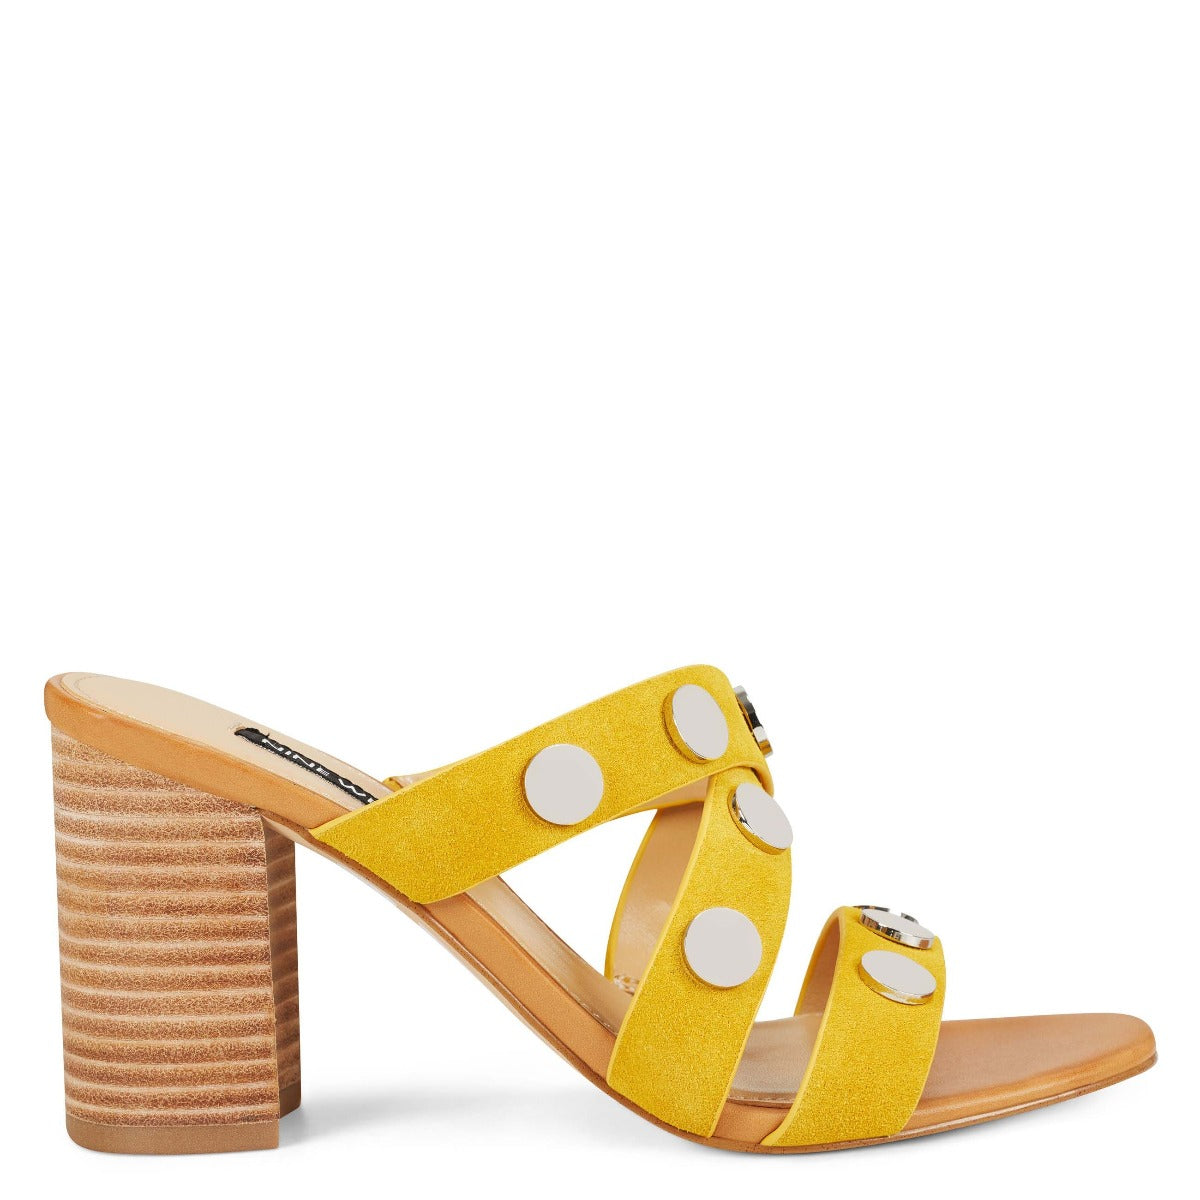 Yoana Heeled Slide Sandals